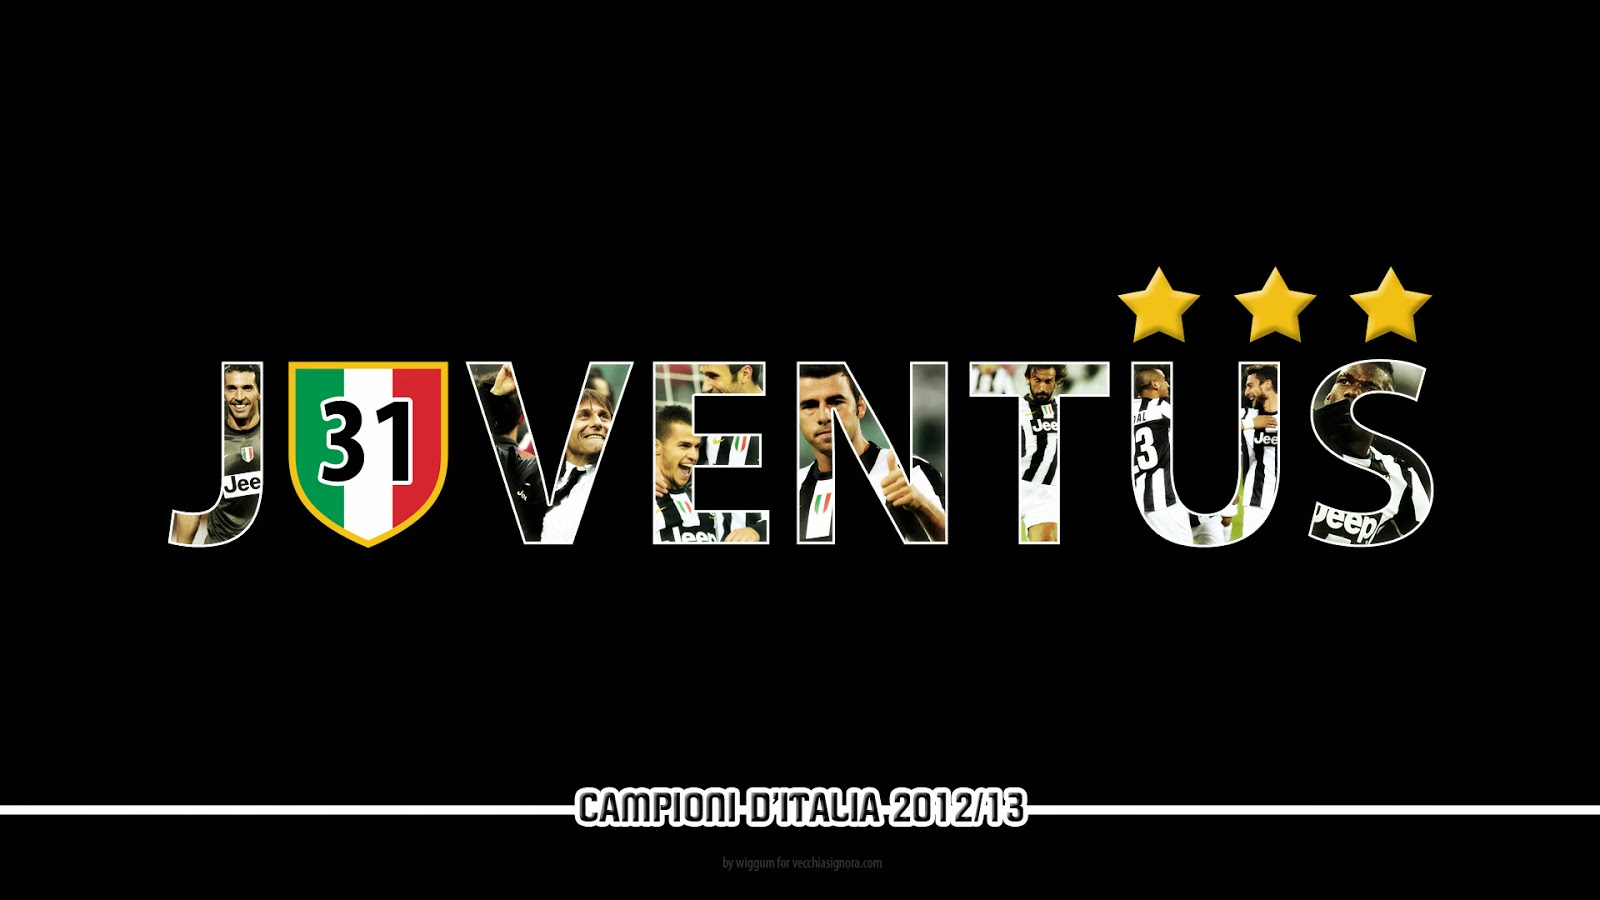 Foto hd wallpaper sfondi juventus for Sfondo juventus hd